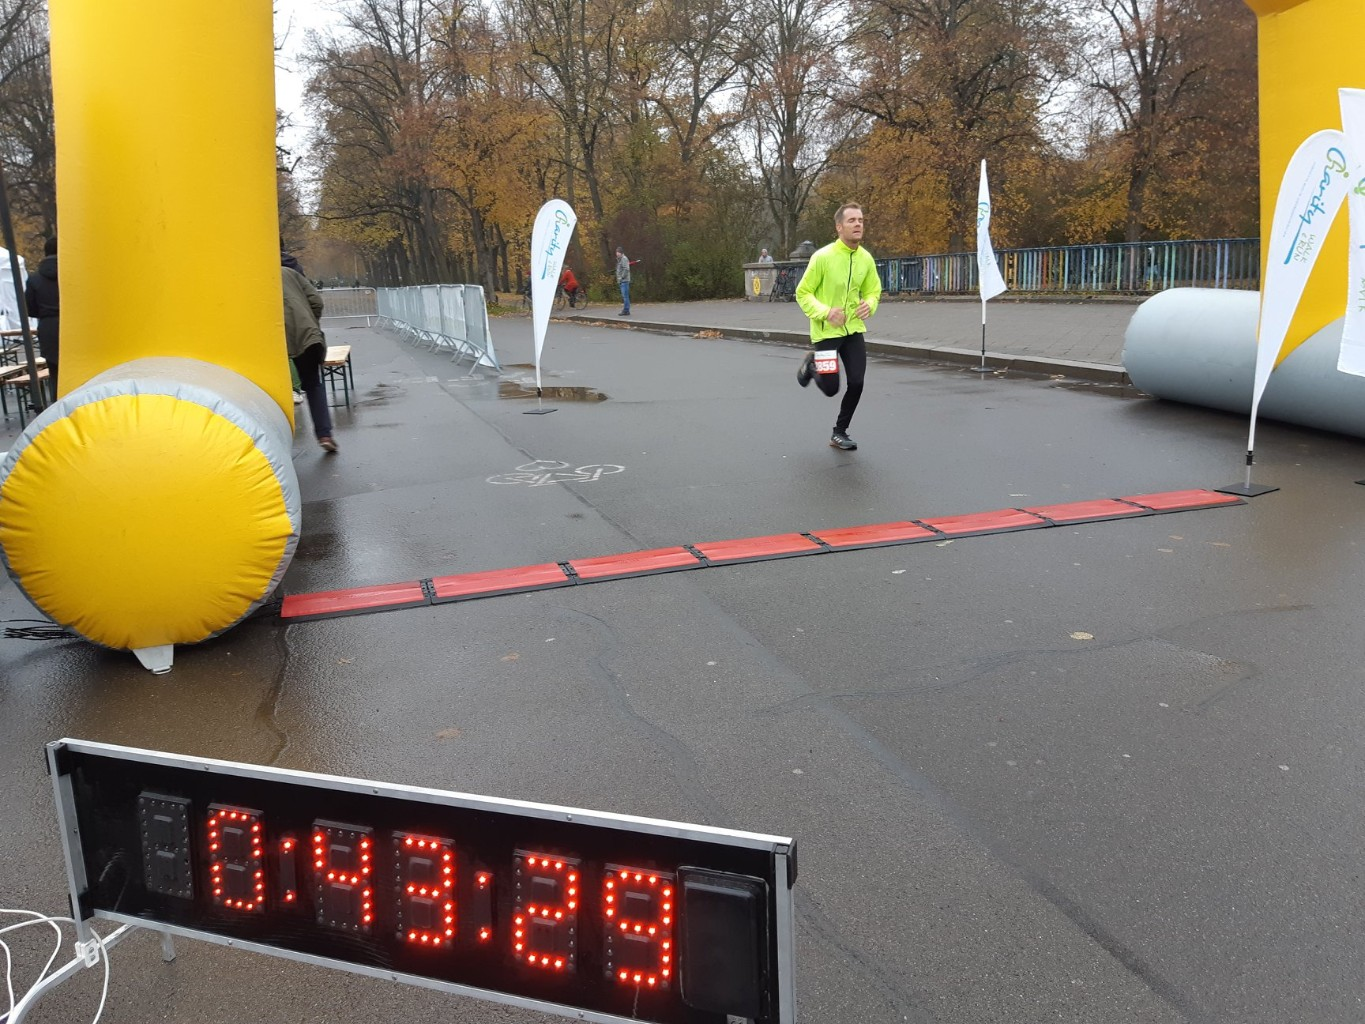 /d/evt/CharityWalkRunBerlinTempelhoferFeldBerlin/1588495658090.jpg